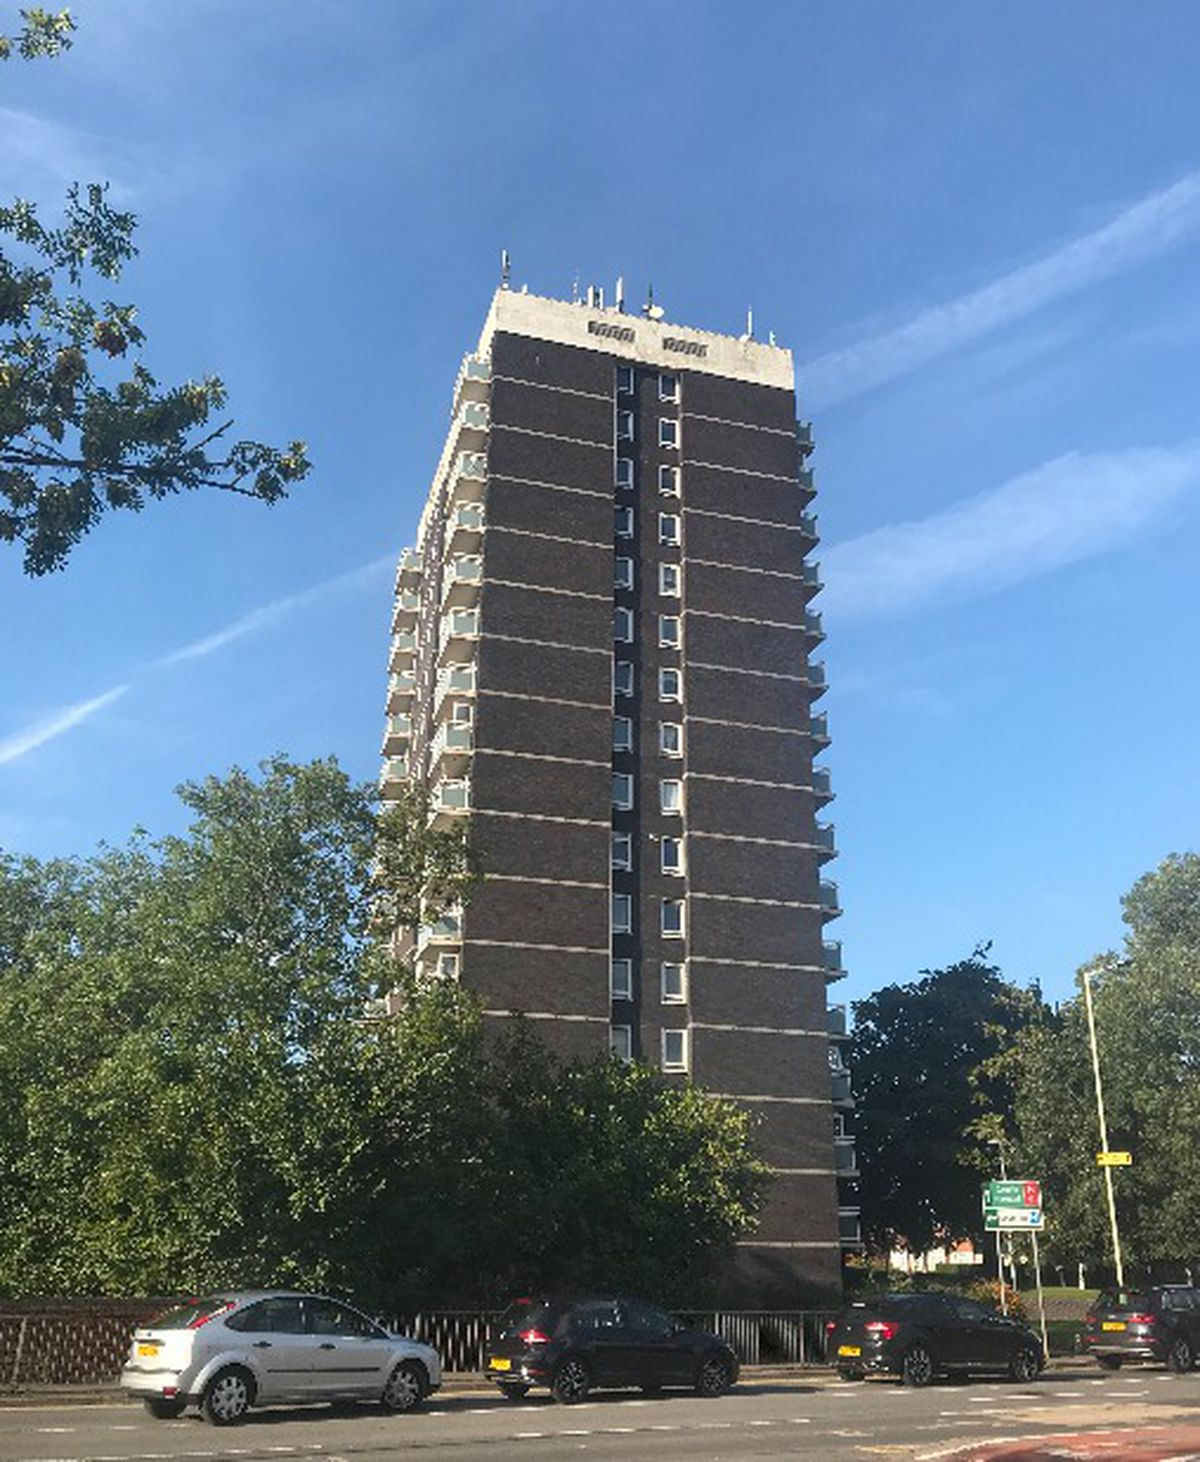 Pennycroft Court flats in Stafford